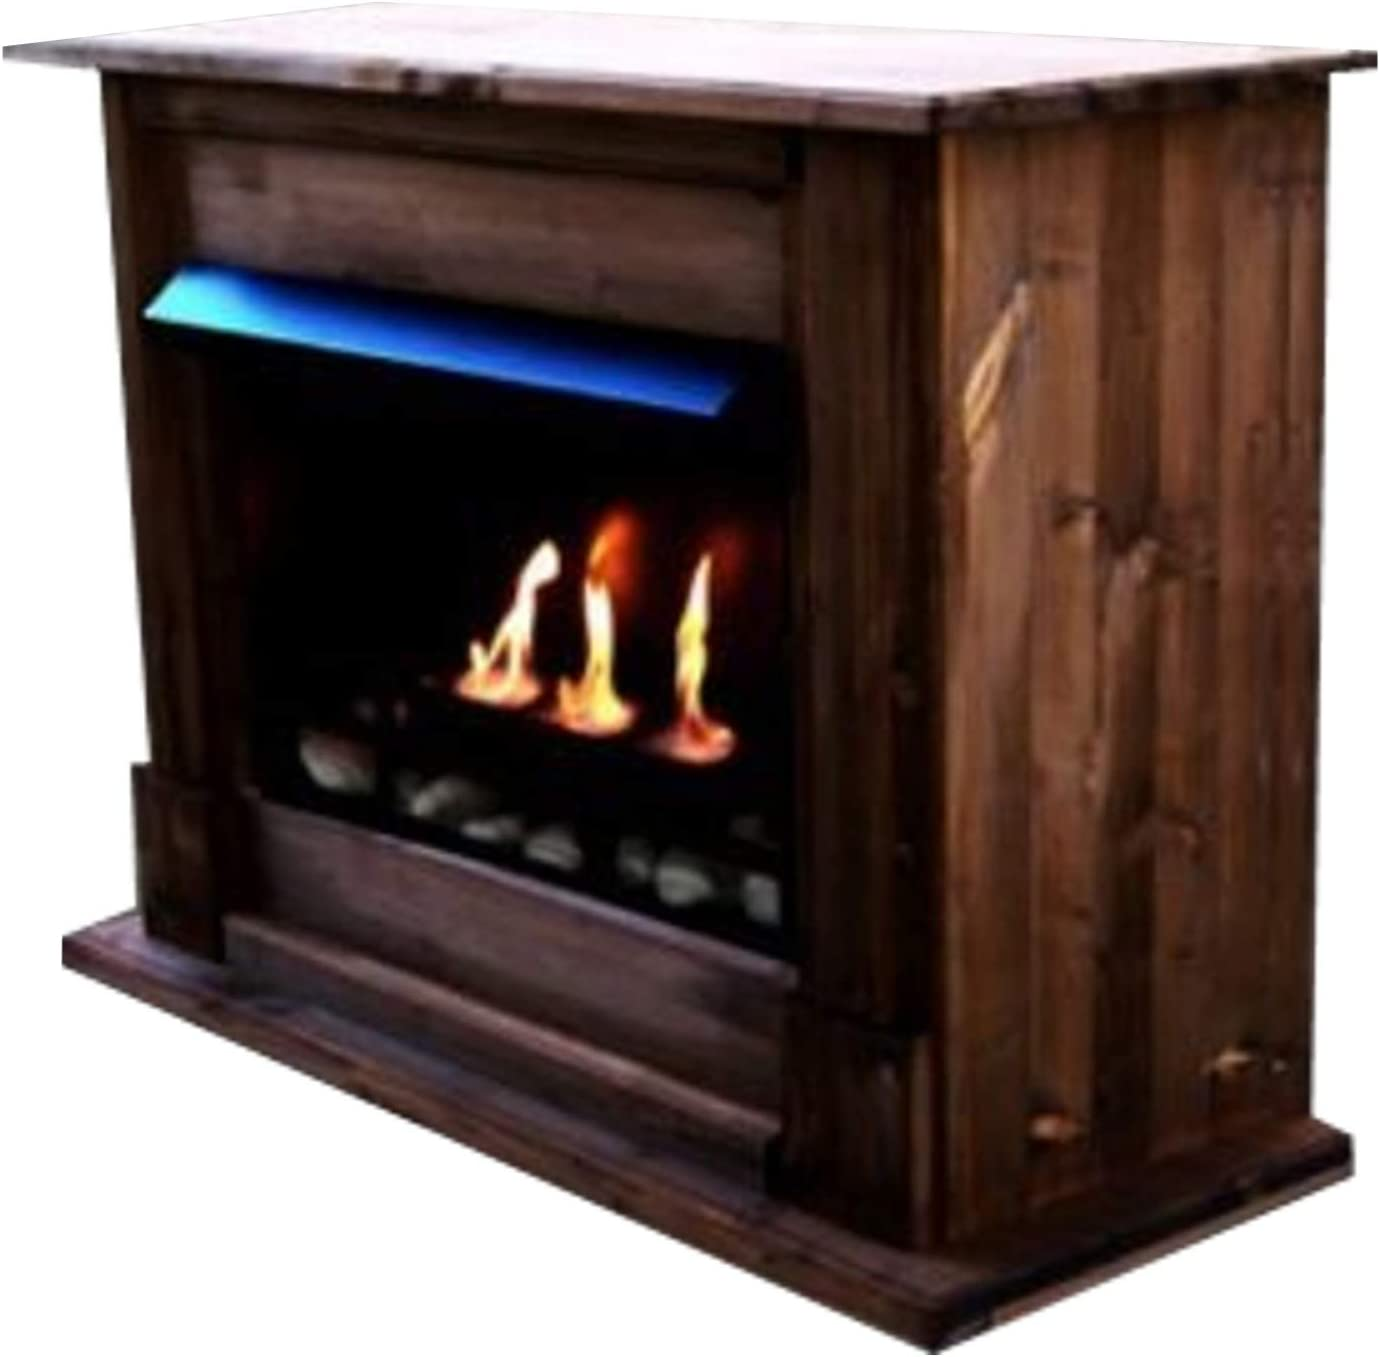 1 Adjustable Stainless-Steel Burner Black Gel Ethanol Fire-Places Emily Deluxe Inclusive